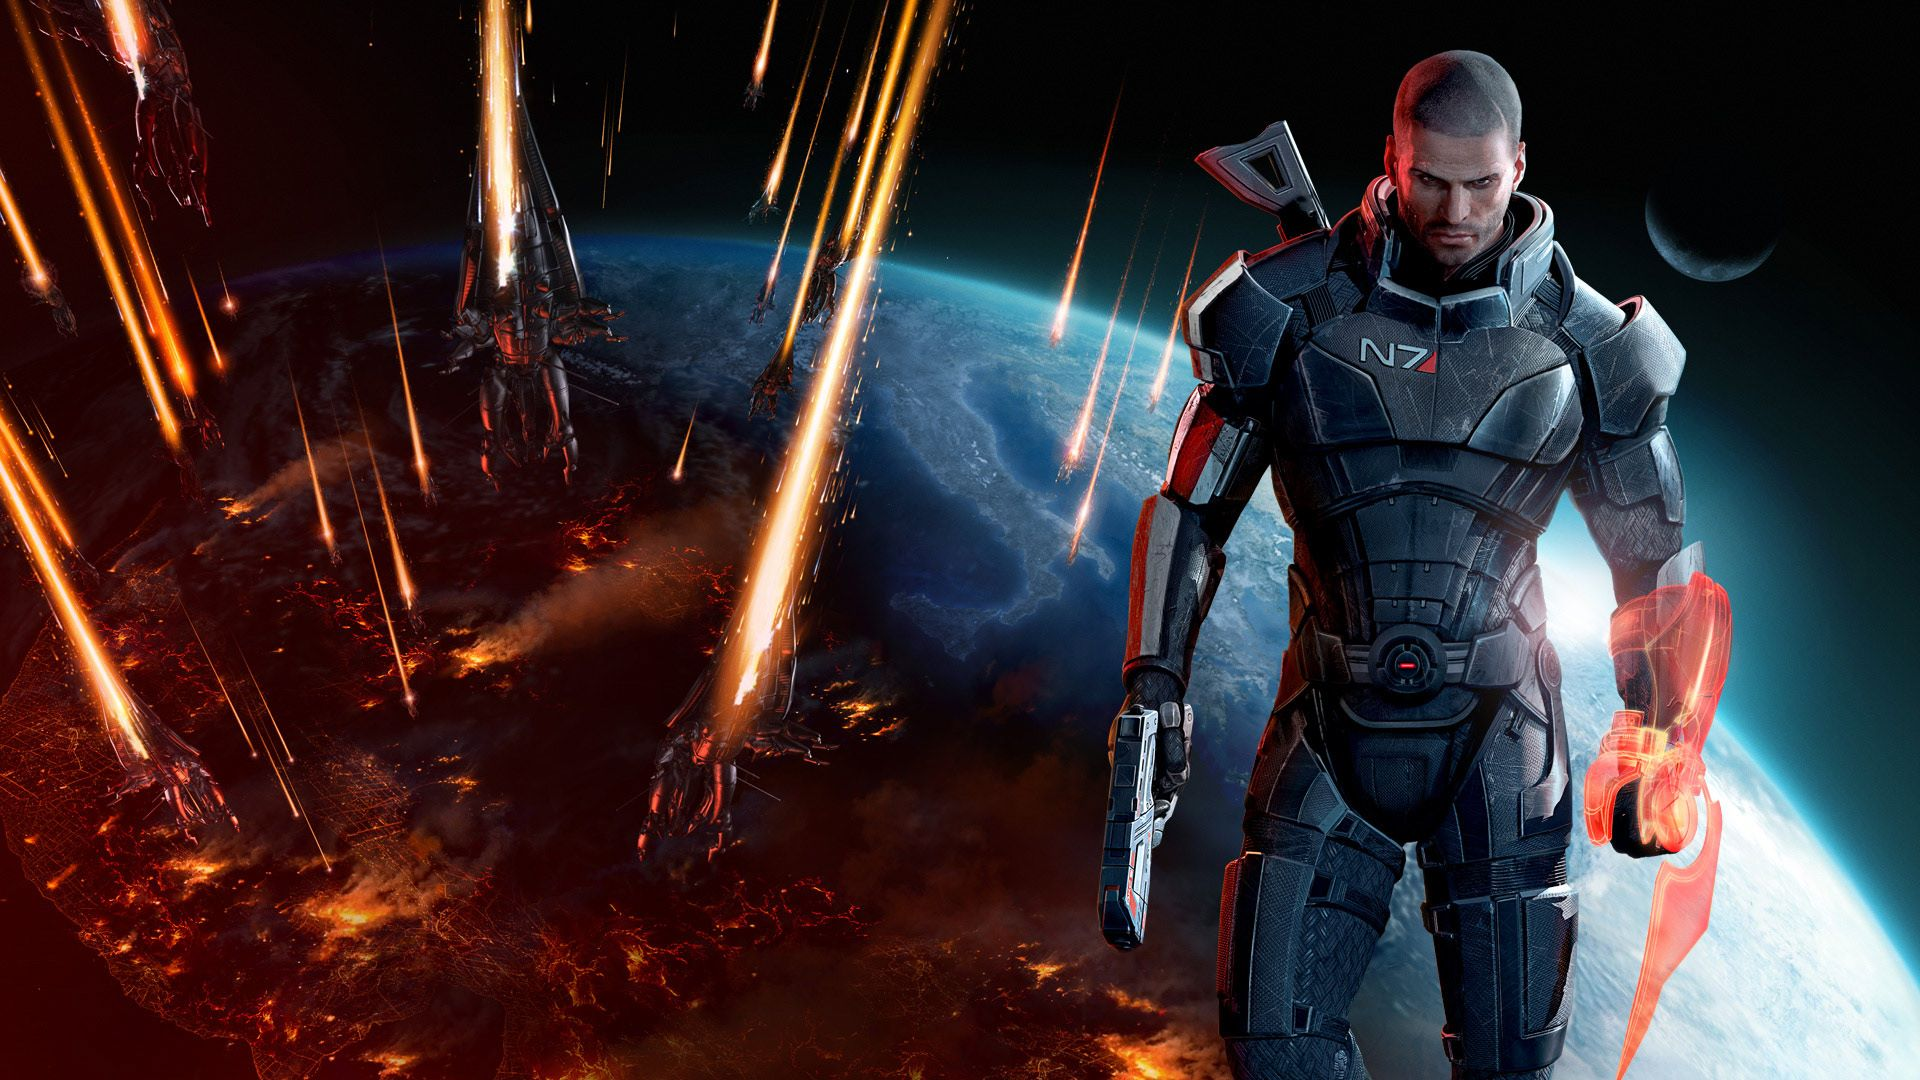 Celebrating a Series: What is the Future of the Mass Effect Series?